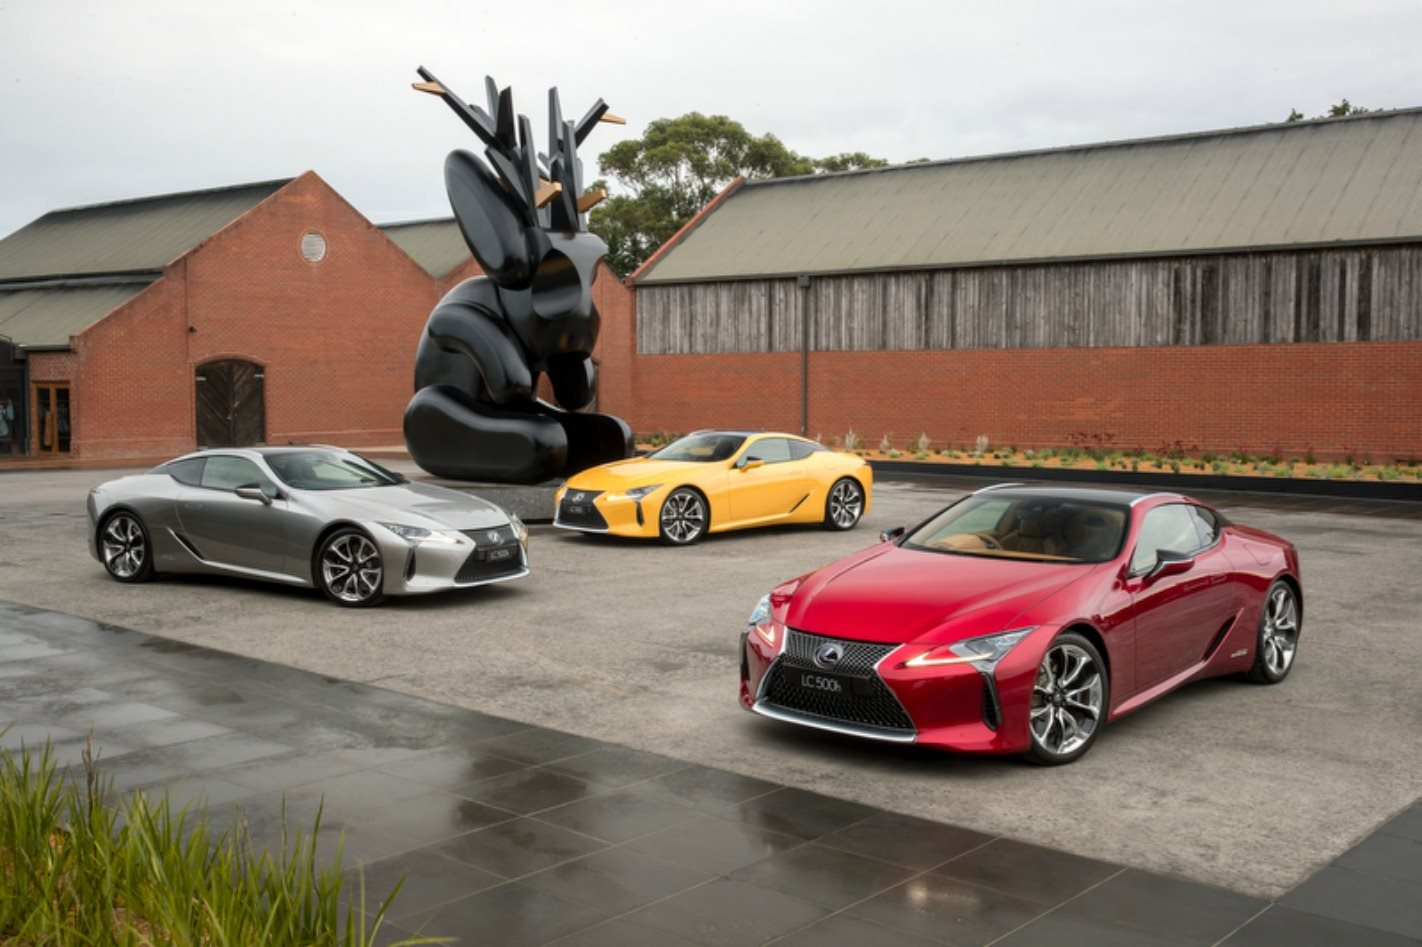 Lexus Lf Lc Price >> 2018 Lexus Lc Pricing Revealed